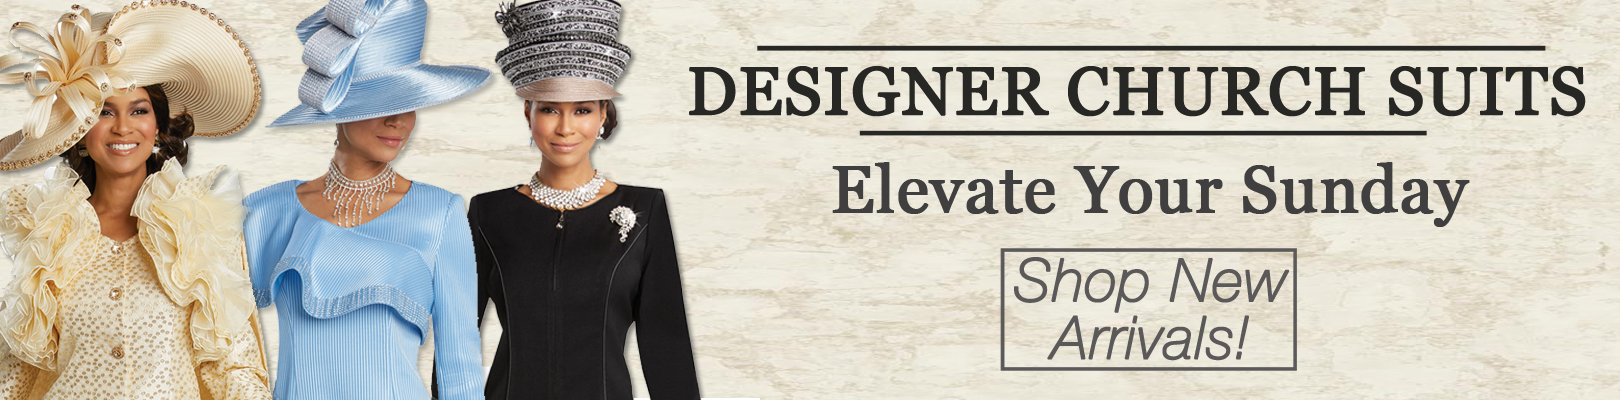 Church Suits, Church Suits For Women - Designer Church Suits